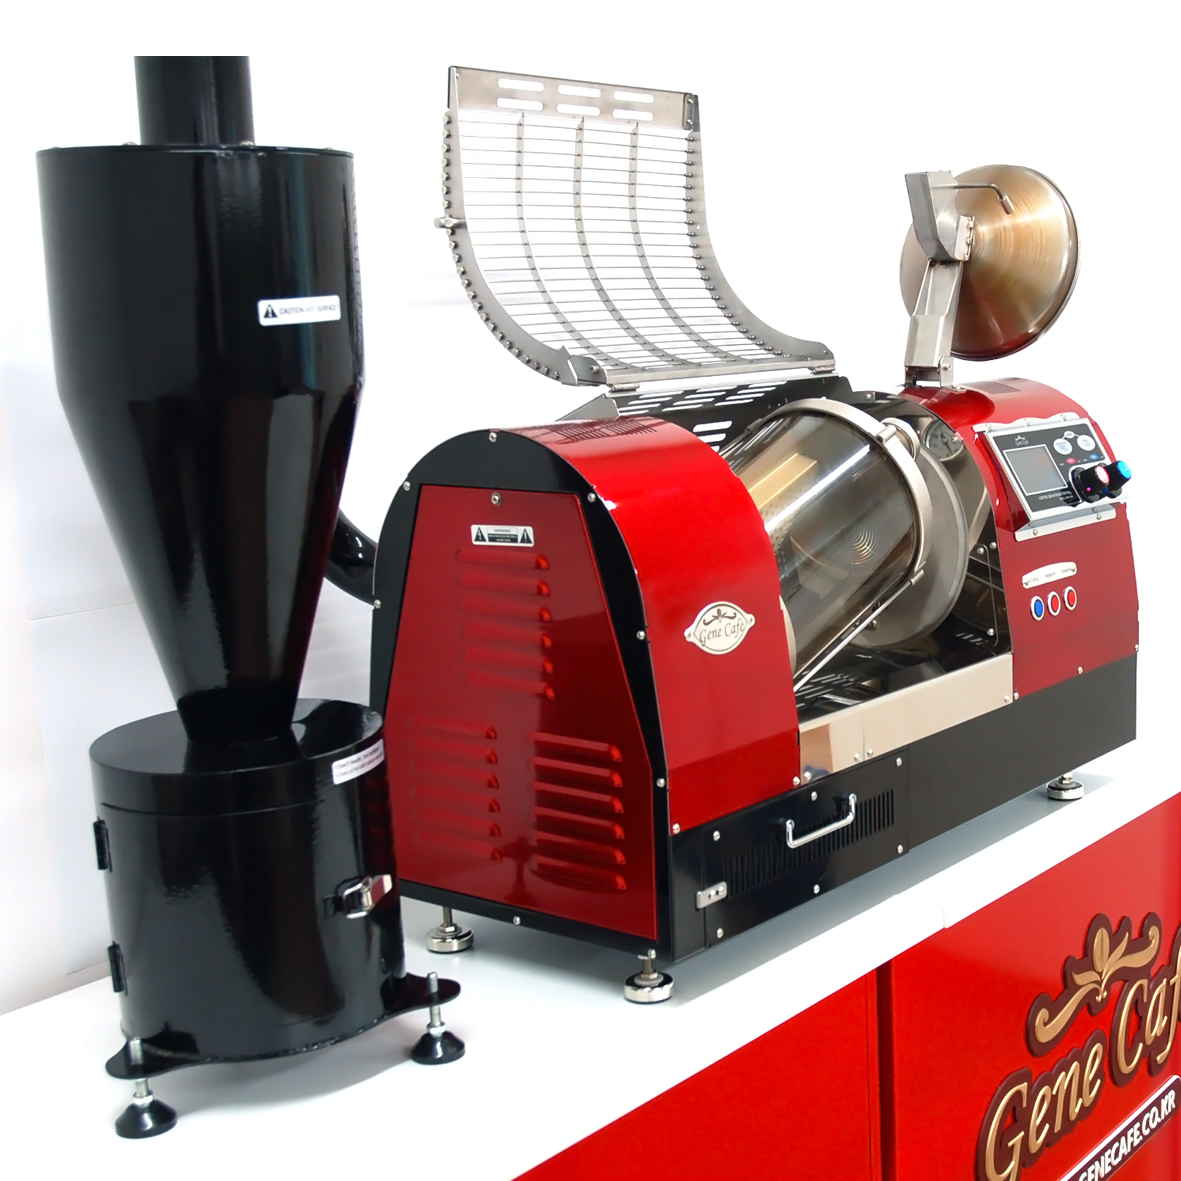 Gene Cafe Cbr 1200 Coffee Roaster Gene Cafe Usa Coffee Coffee Coffee Roasting Espresso